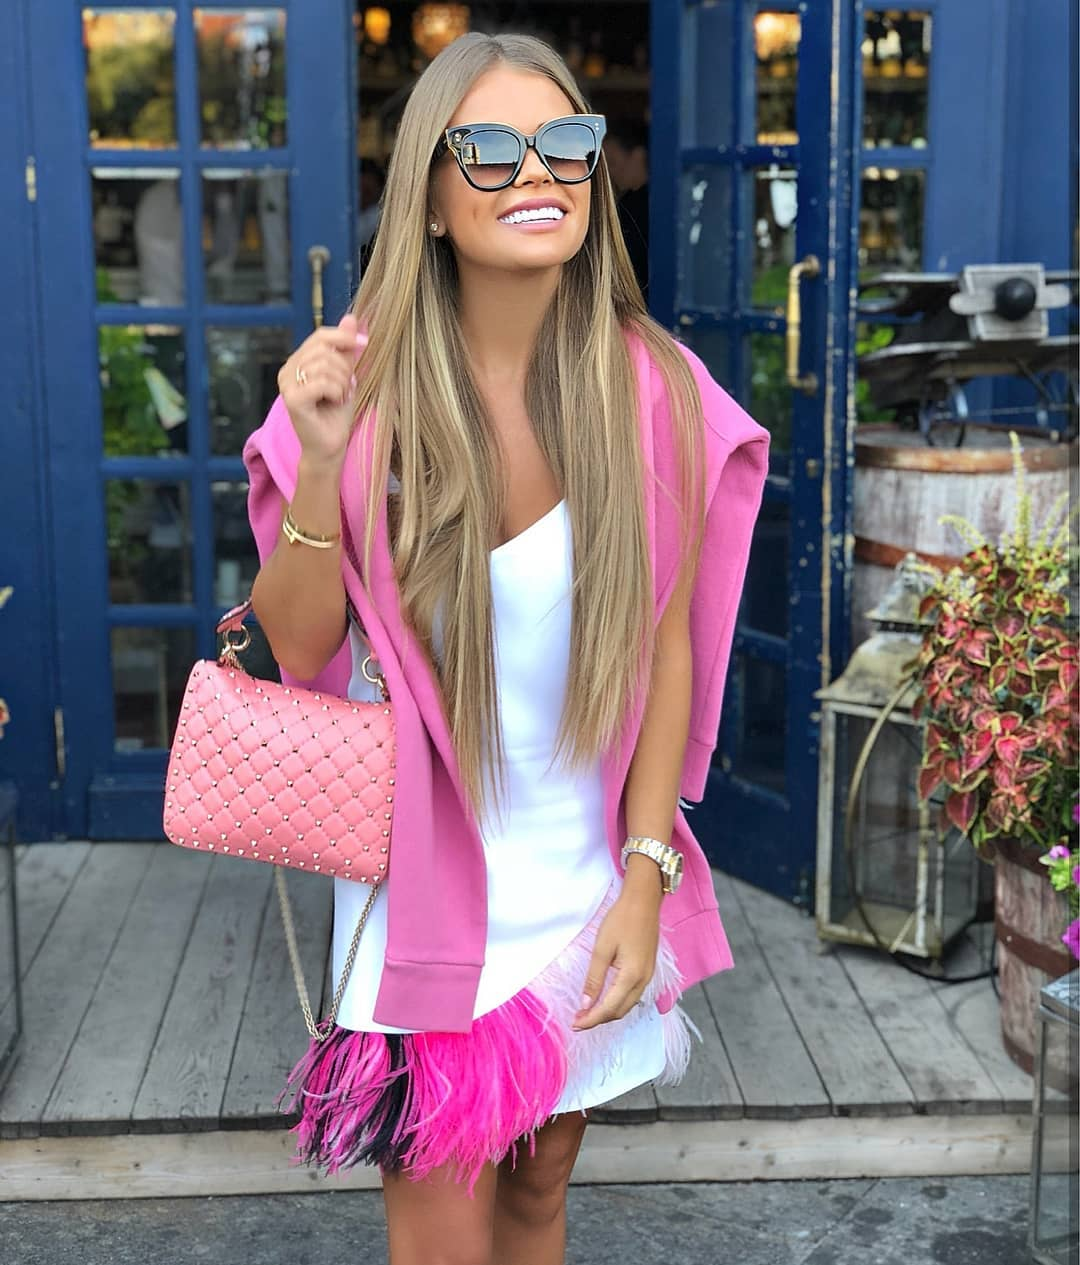 White Dress And Pink Sweater Combination For Spring 2021